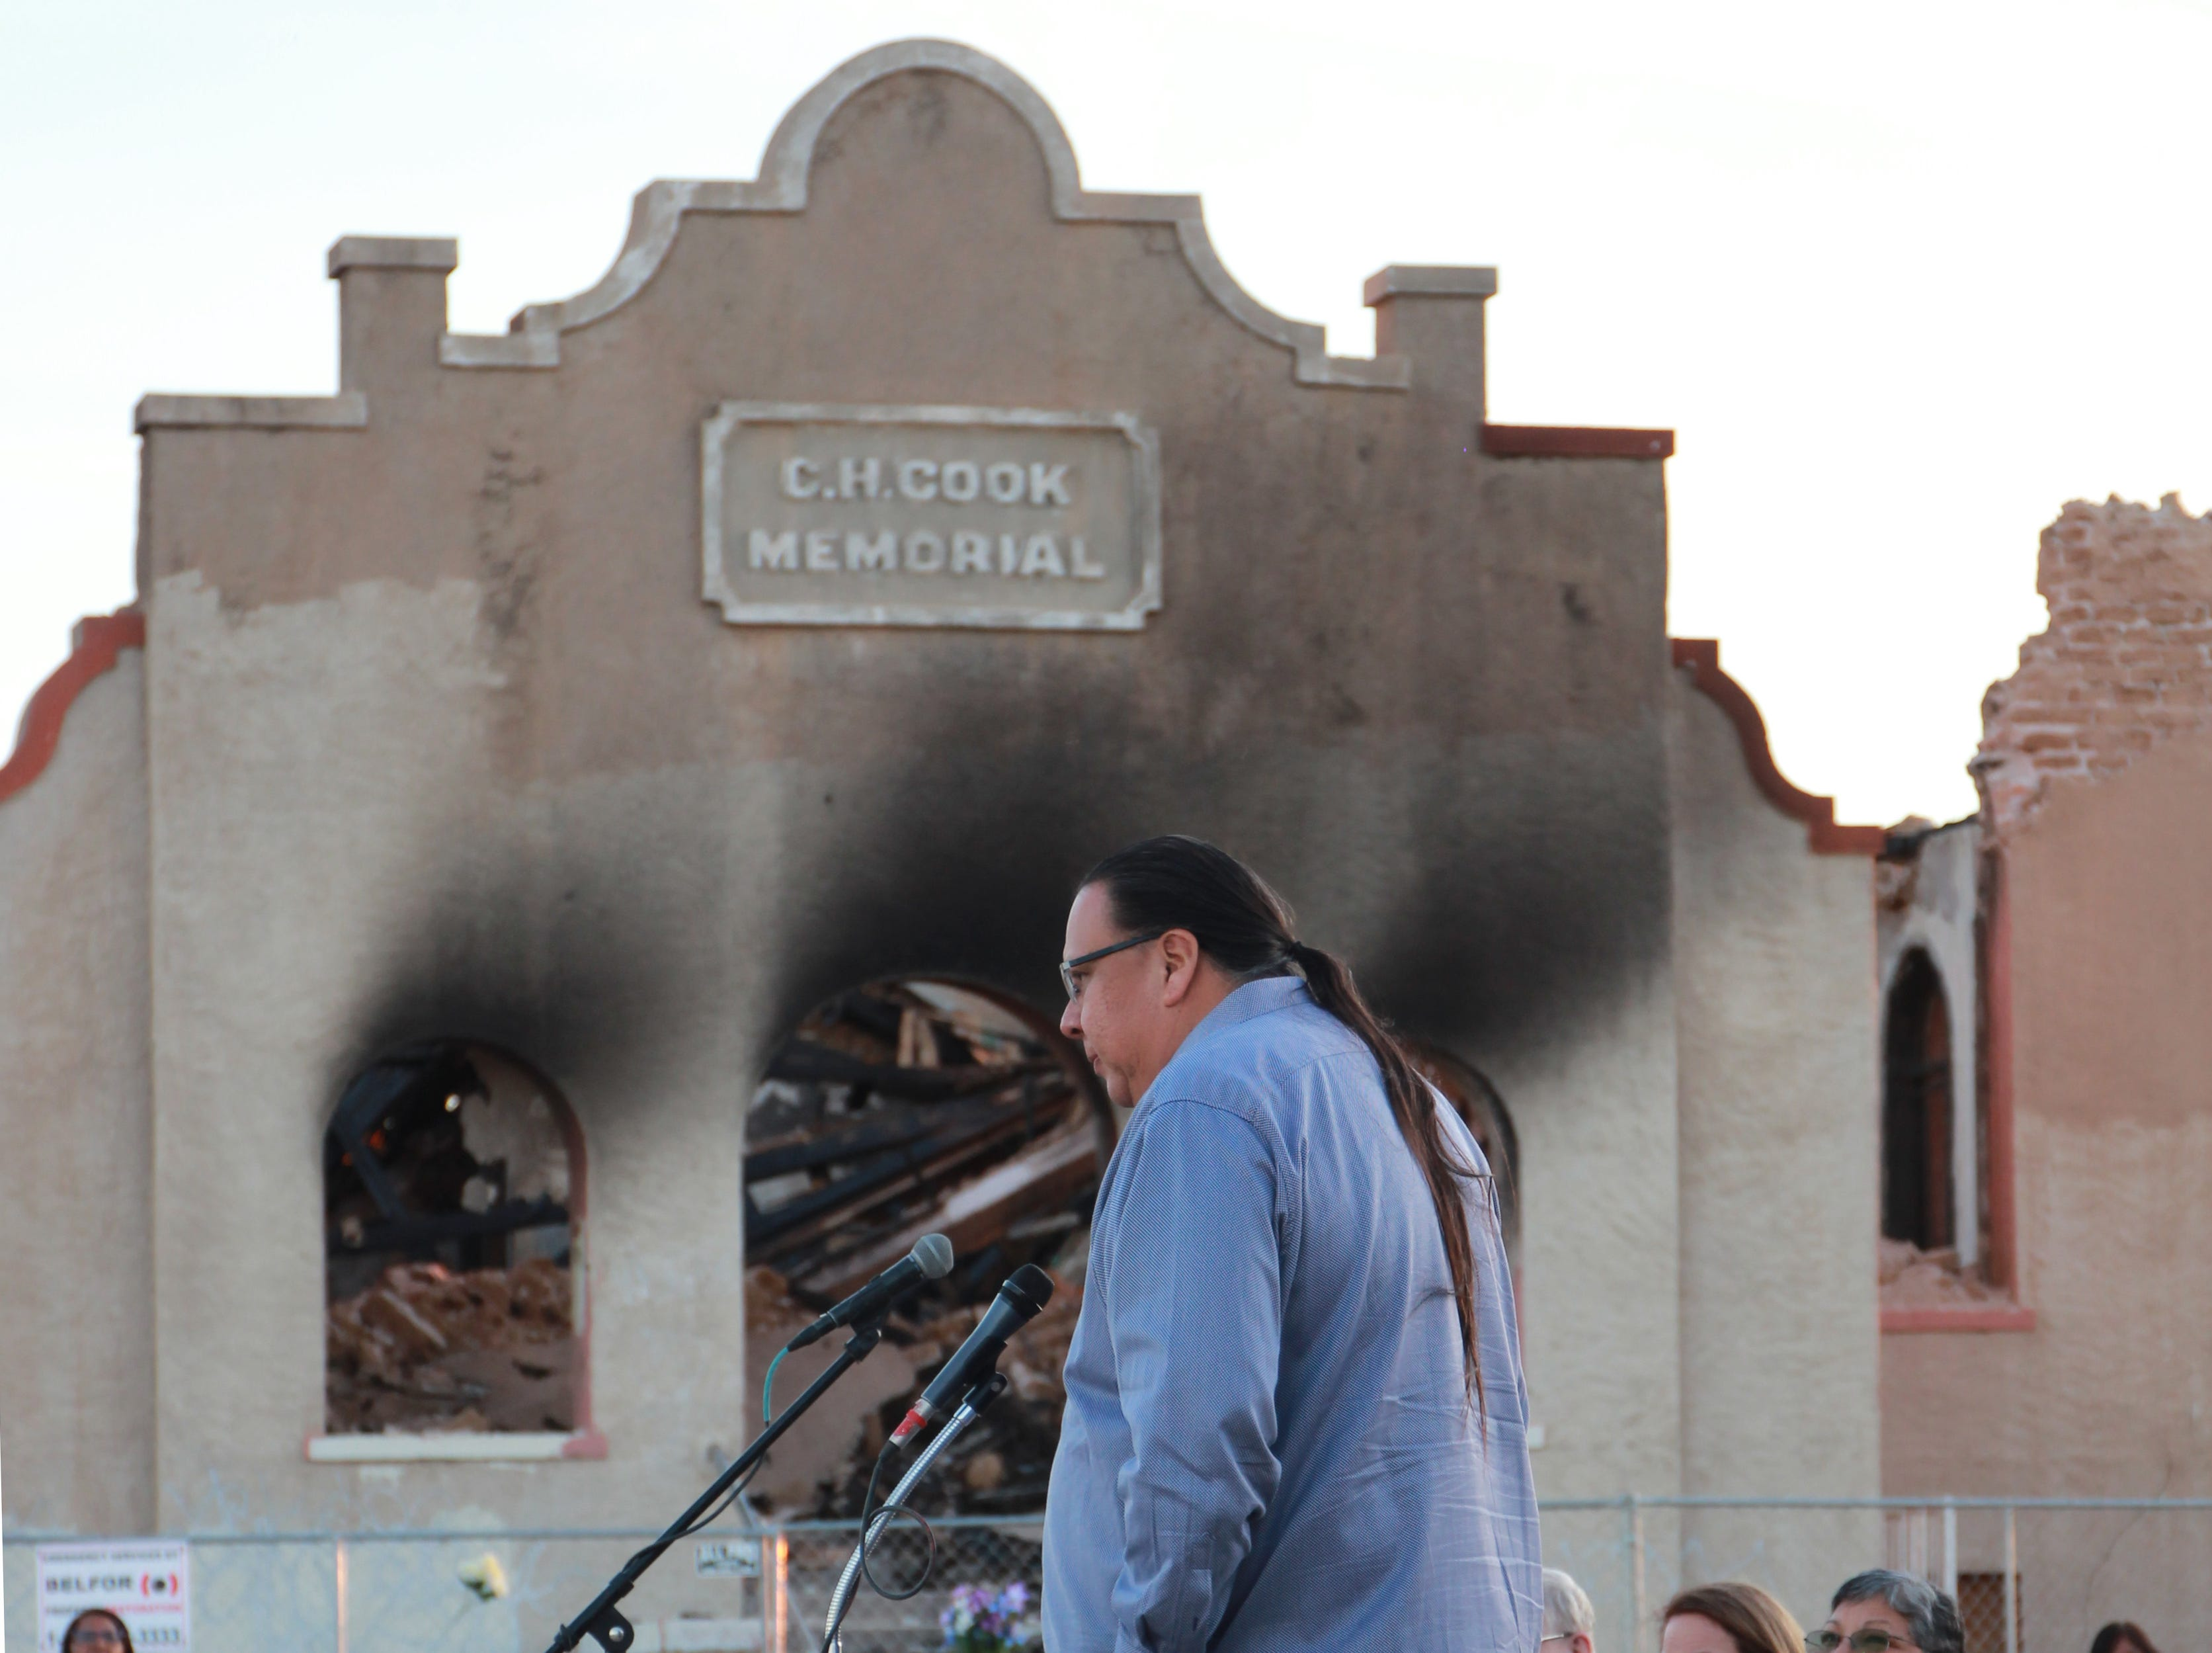 Governor Lewis speaks upon his memories of the church at the prayer vigil.